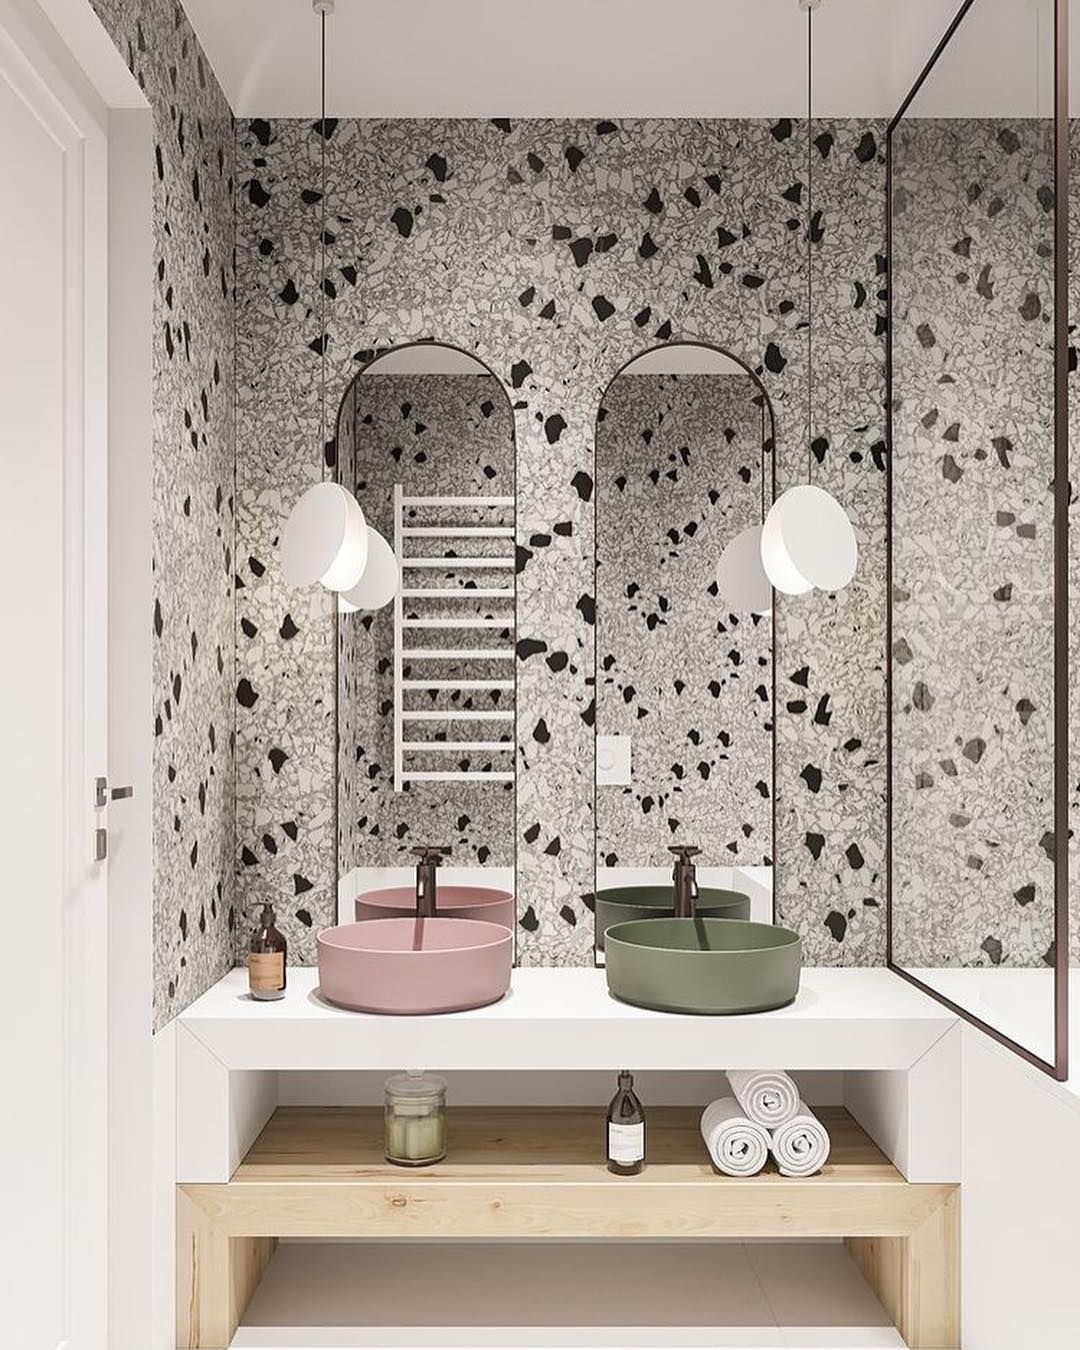 wooden vanity in natural brown and white, pink round sink, green round sink, marble wall, white pendants, tall mirror